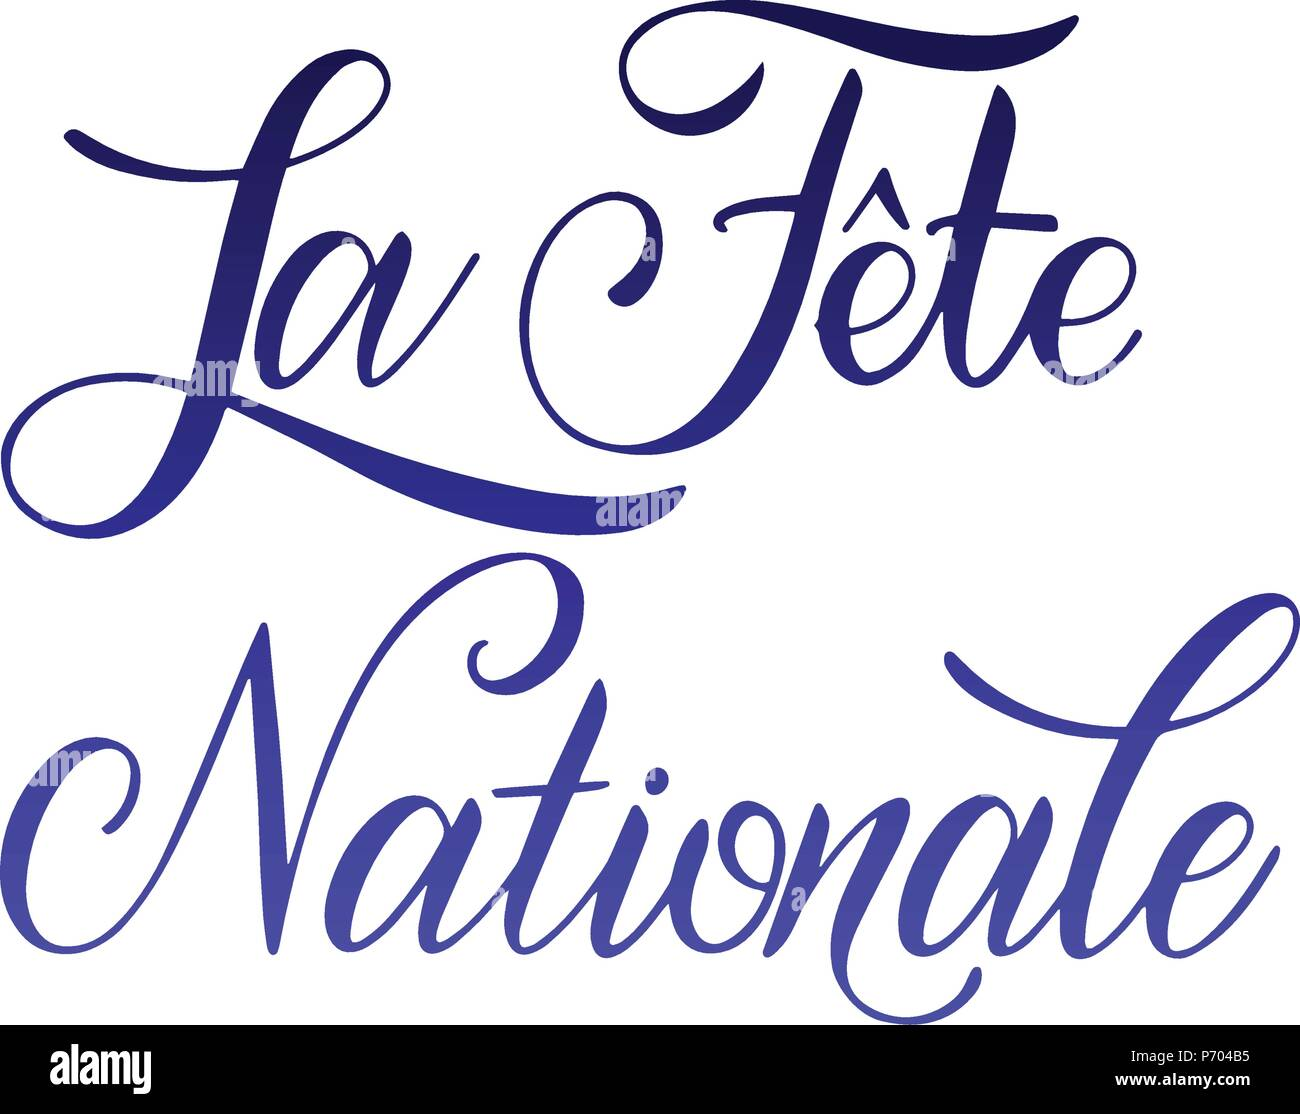 Bastille day hand drawn lettering the national day on french la bastille day hand drawn lettering the national day on french la fete nationale vector elements for invitations posters greeting cards t shirt design m4hsunfo